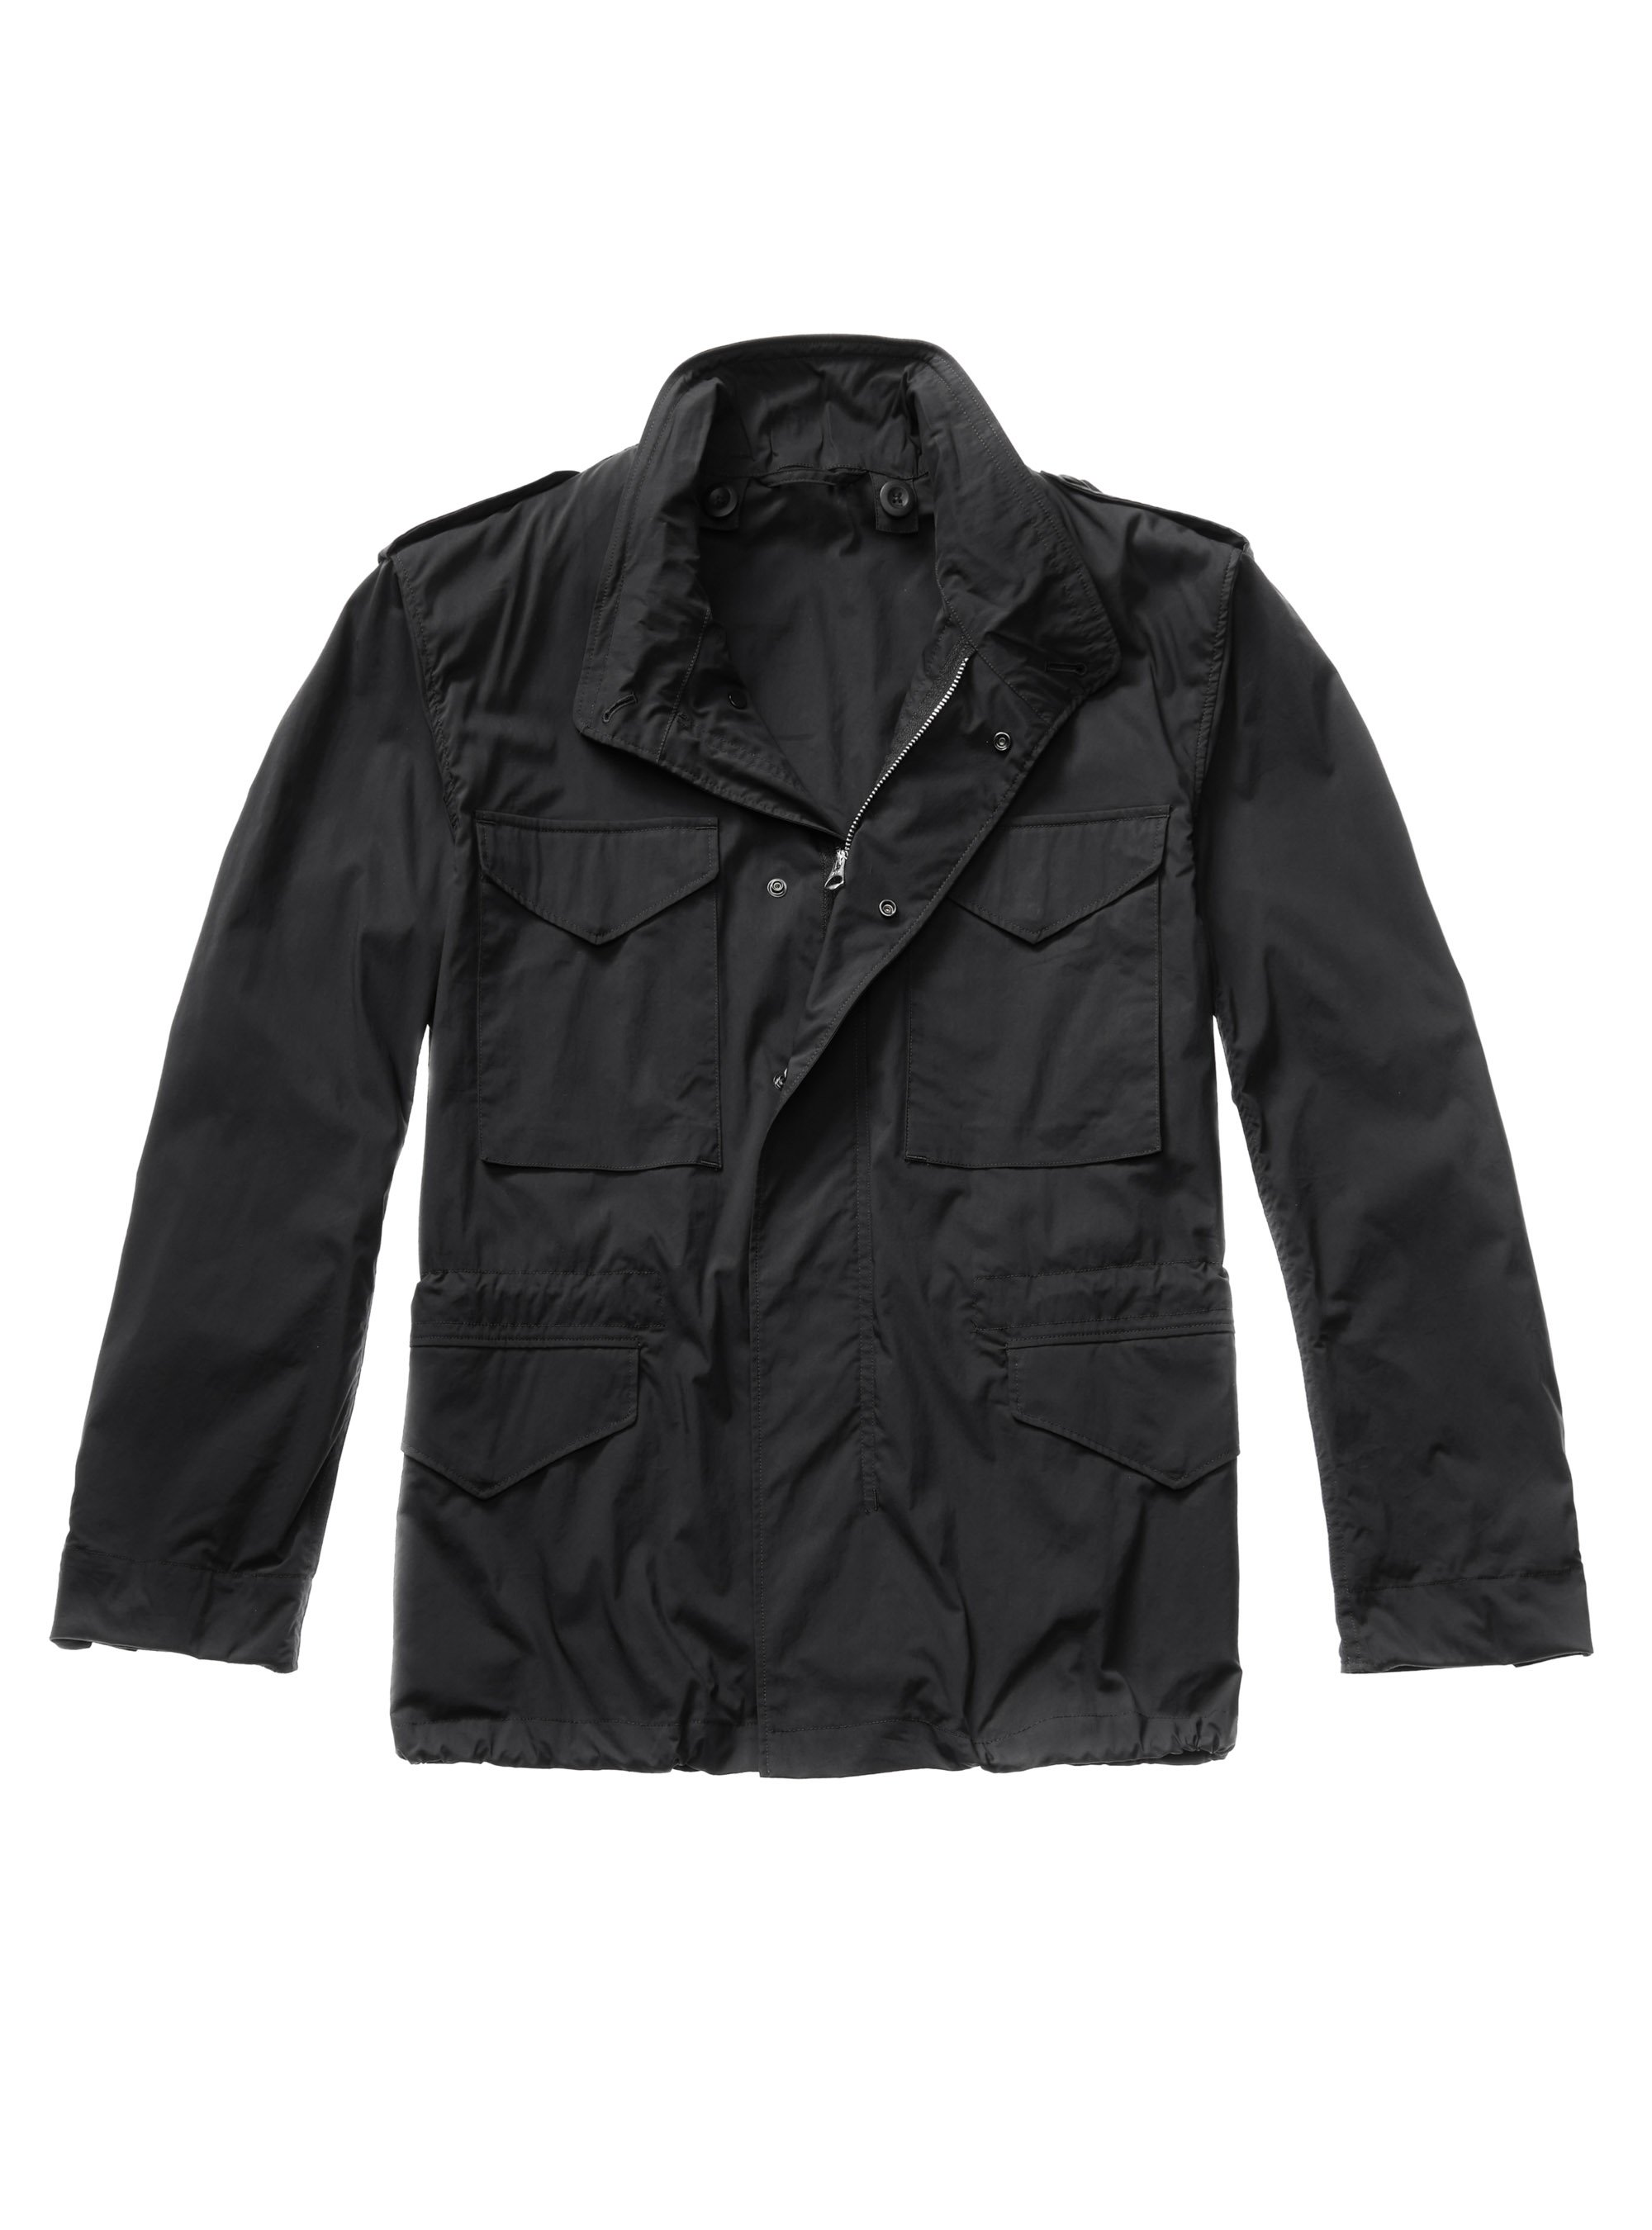 TEN C - FIELD JACKET - SUMMER EDIT - Black - TEN C